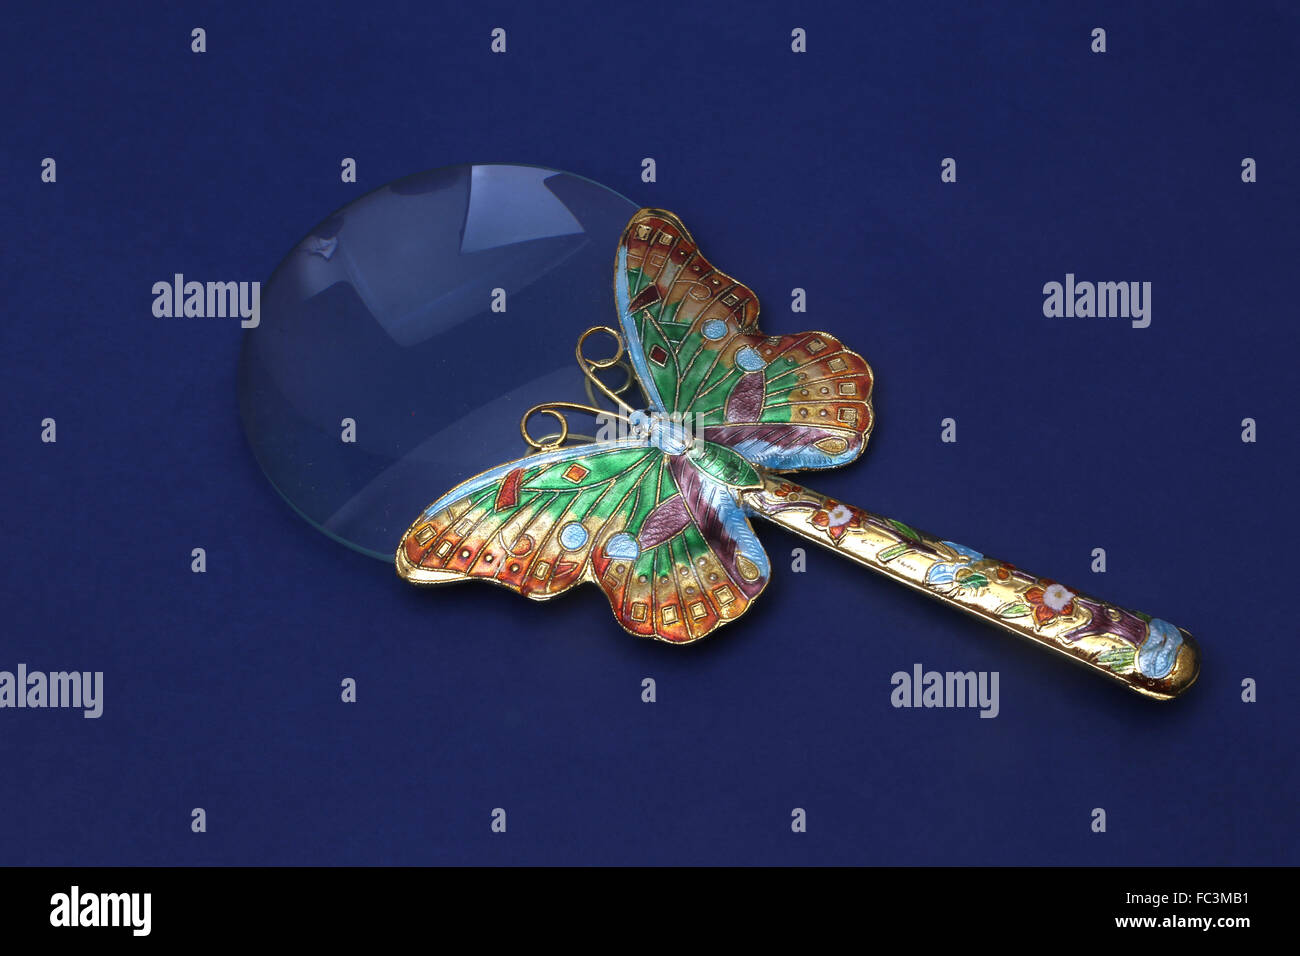 Magnifying Glass With Cloisonne Enamel Butterfly Design - Stock Image